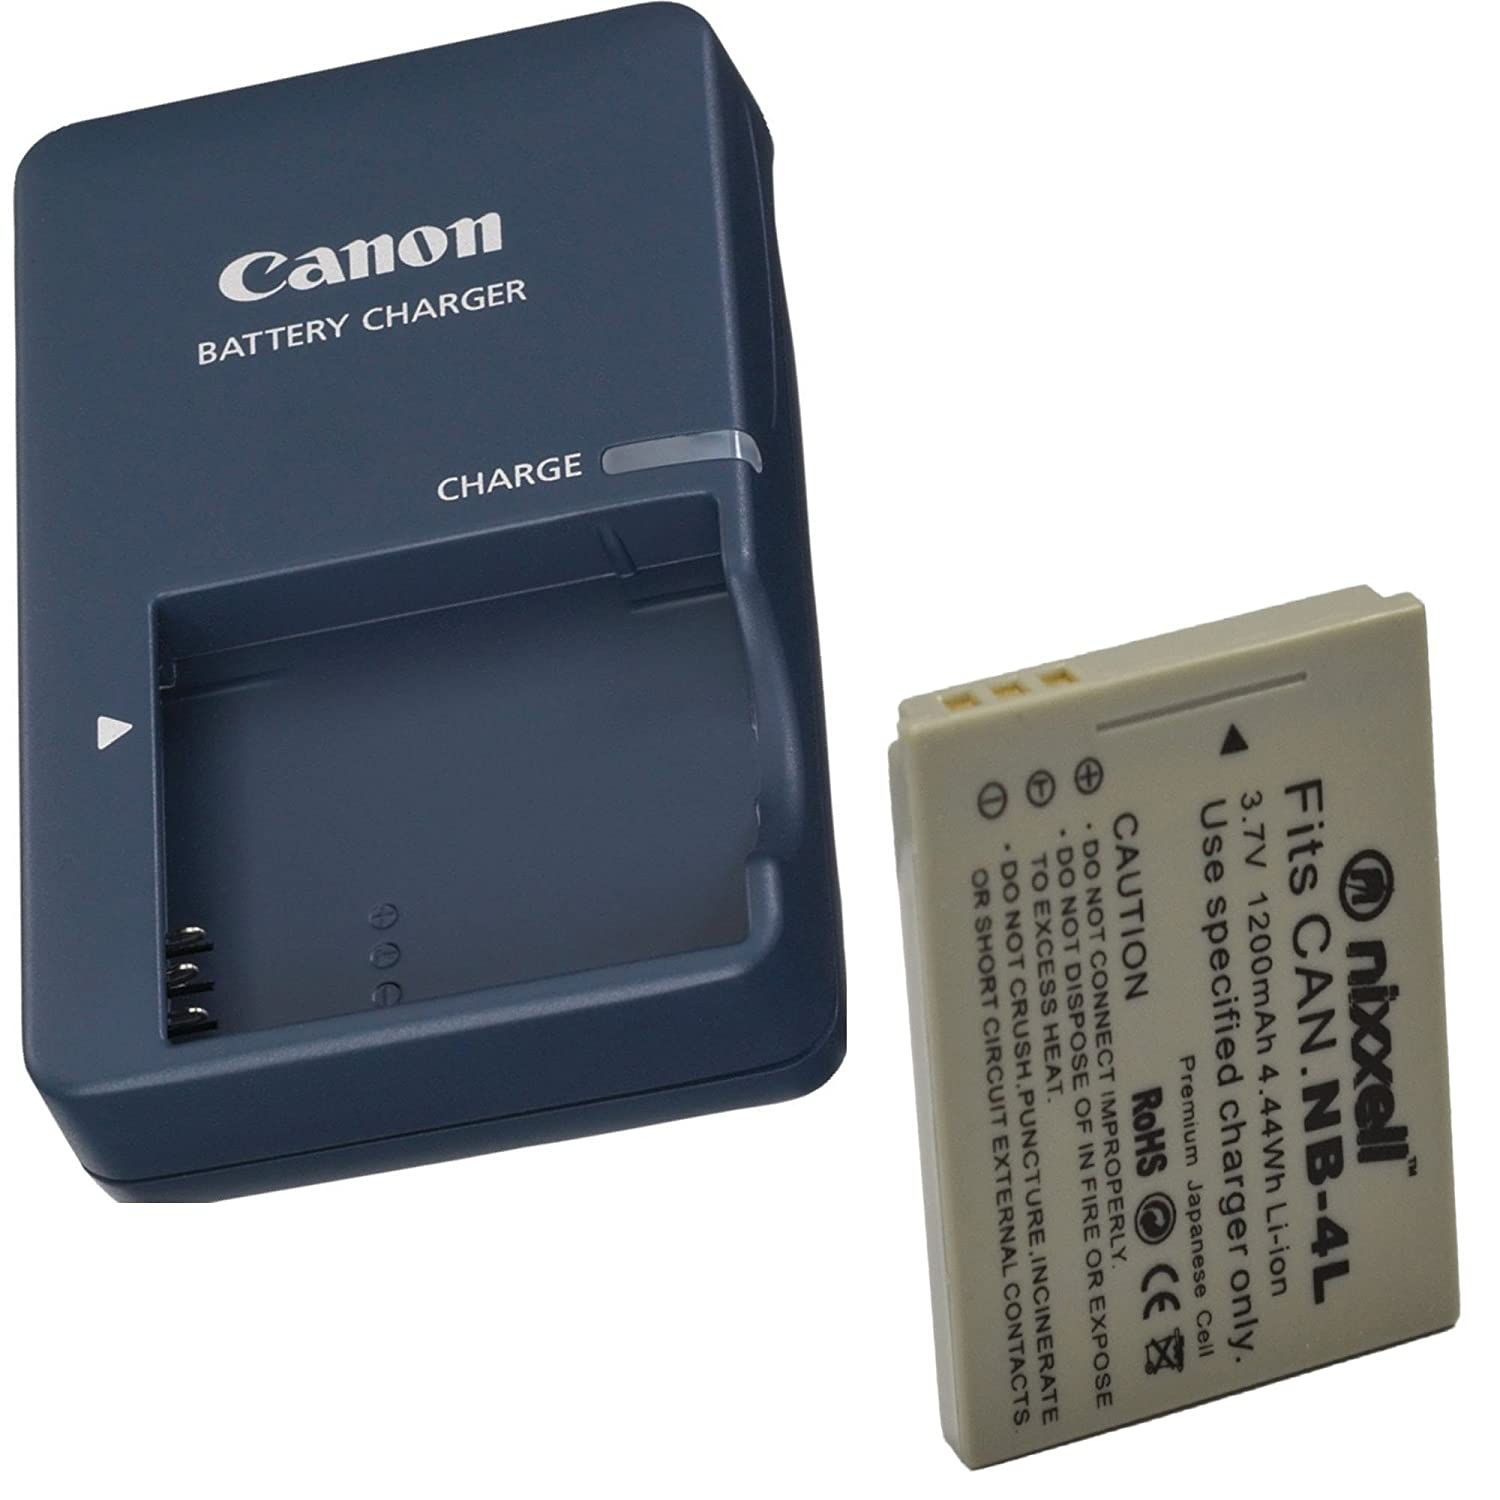 Cb 2lv Battery Charger For Canon Nb 4l And Circuit Mobile Phone Powershot Sd40 Sd30 Sd200 Sd300 Sd400 Sd430 Sd450 Sd600 Sd630 Sd750